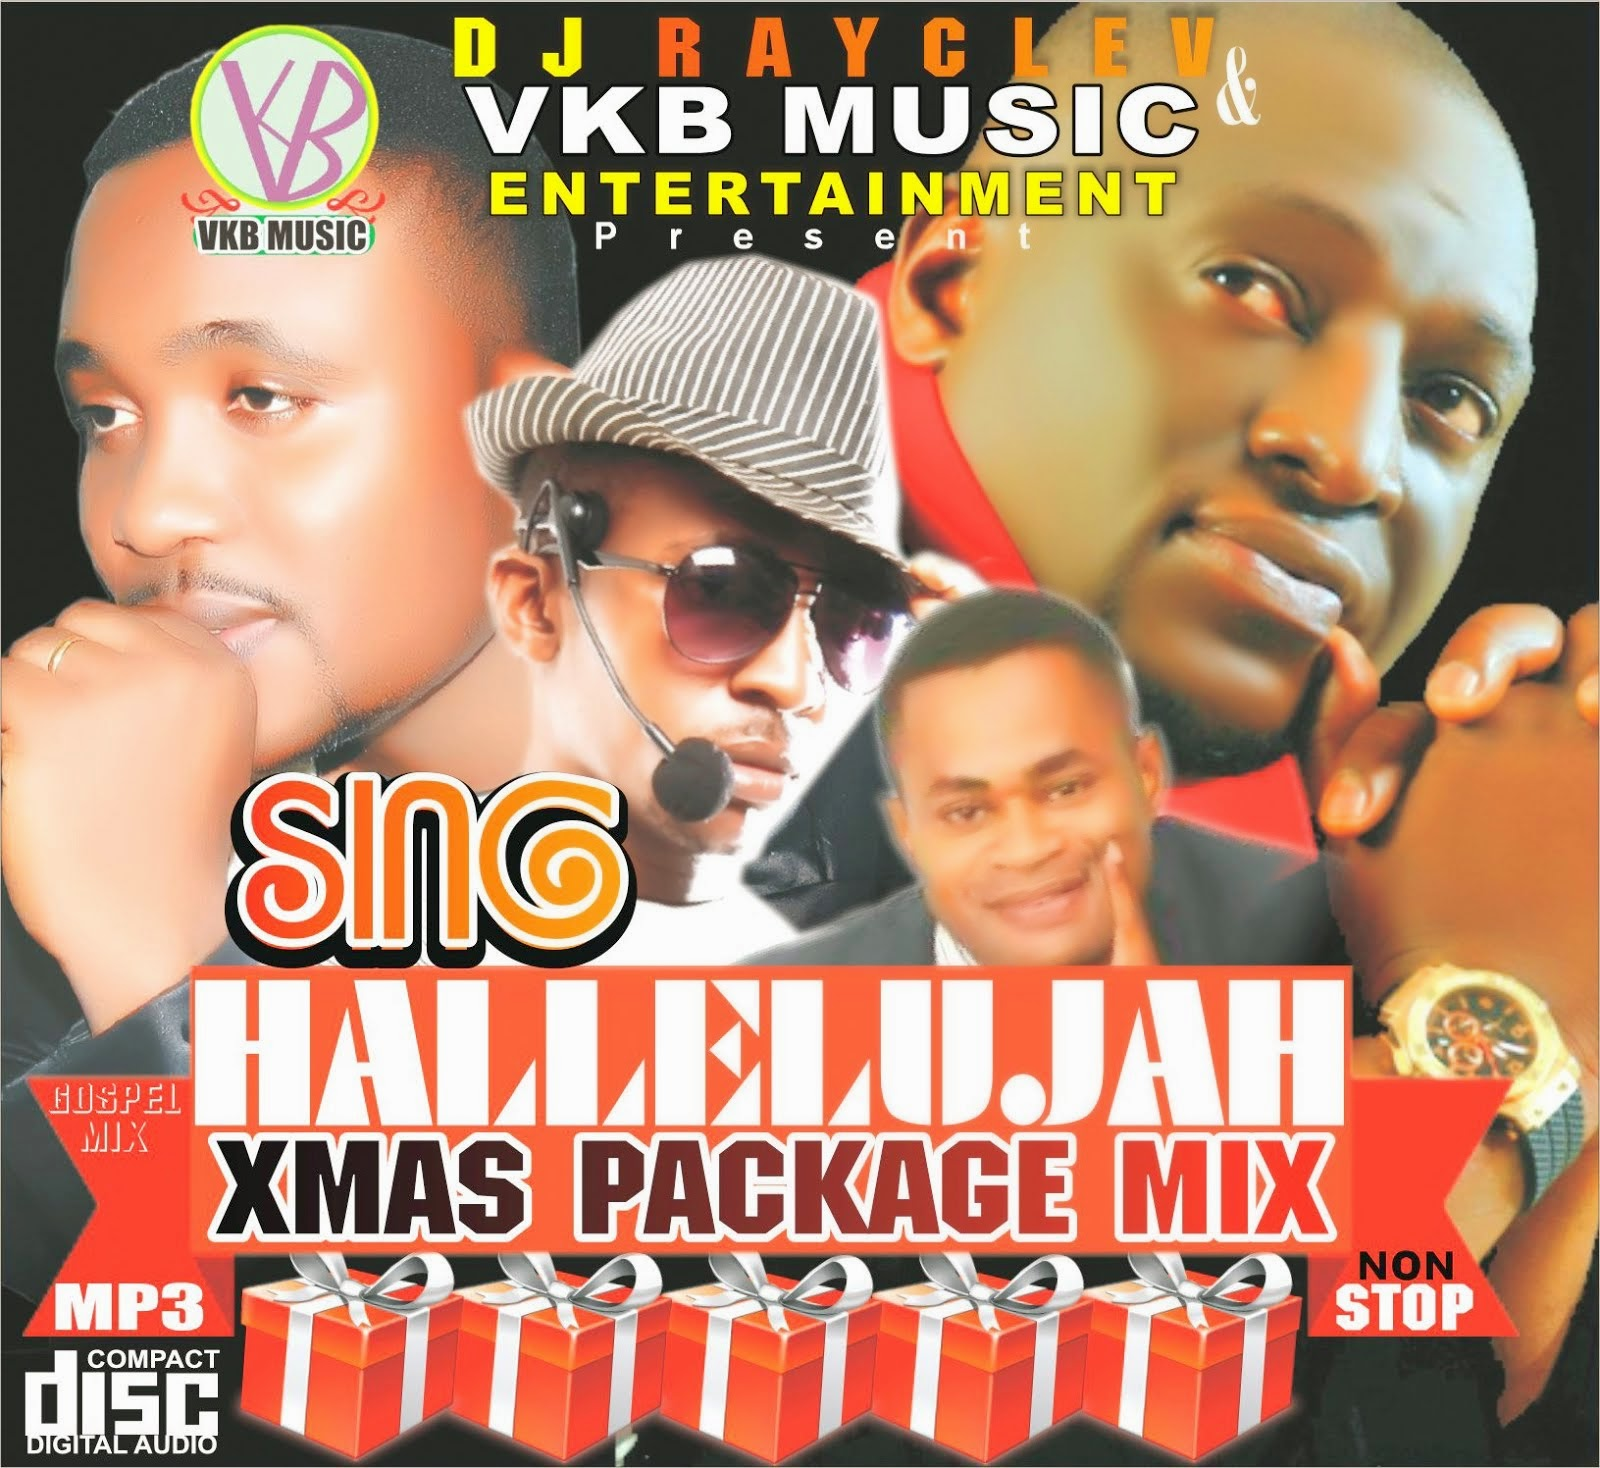 GOSPEL MIX: SING HALLELUJAH XMAS PACKAGE